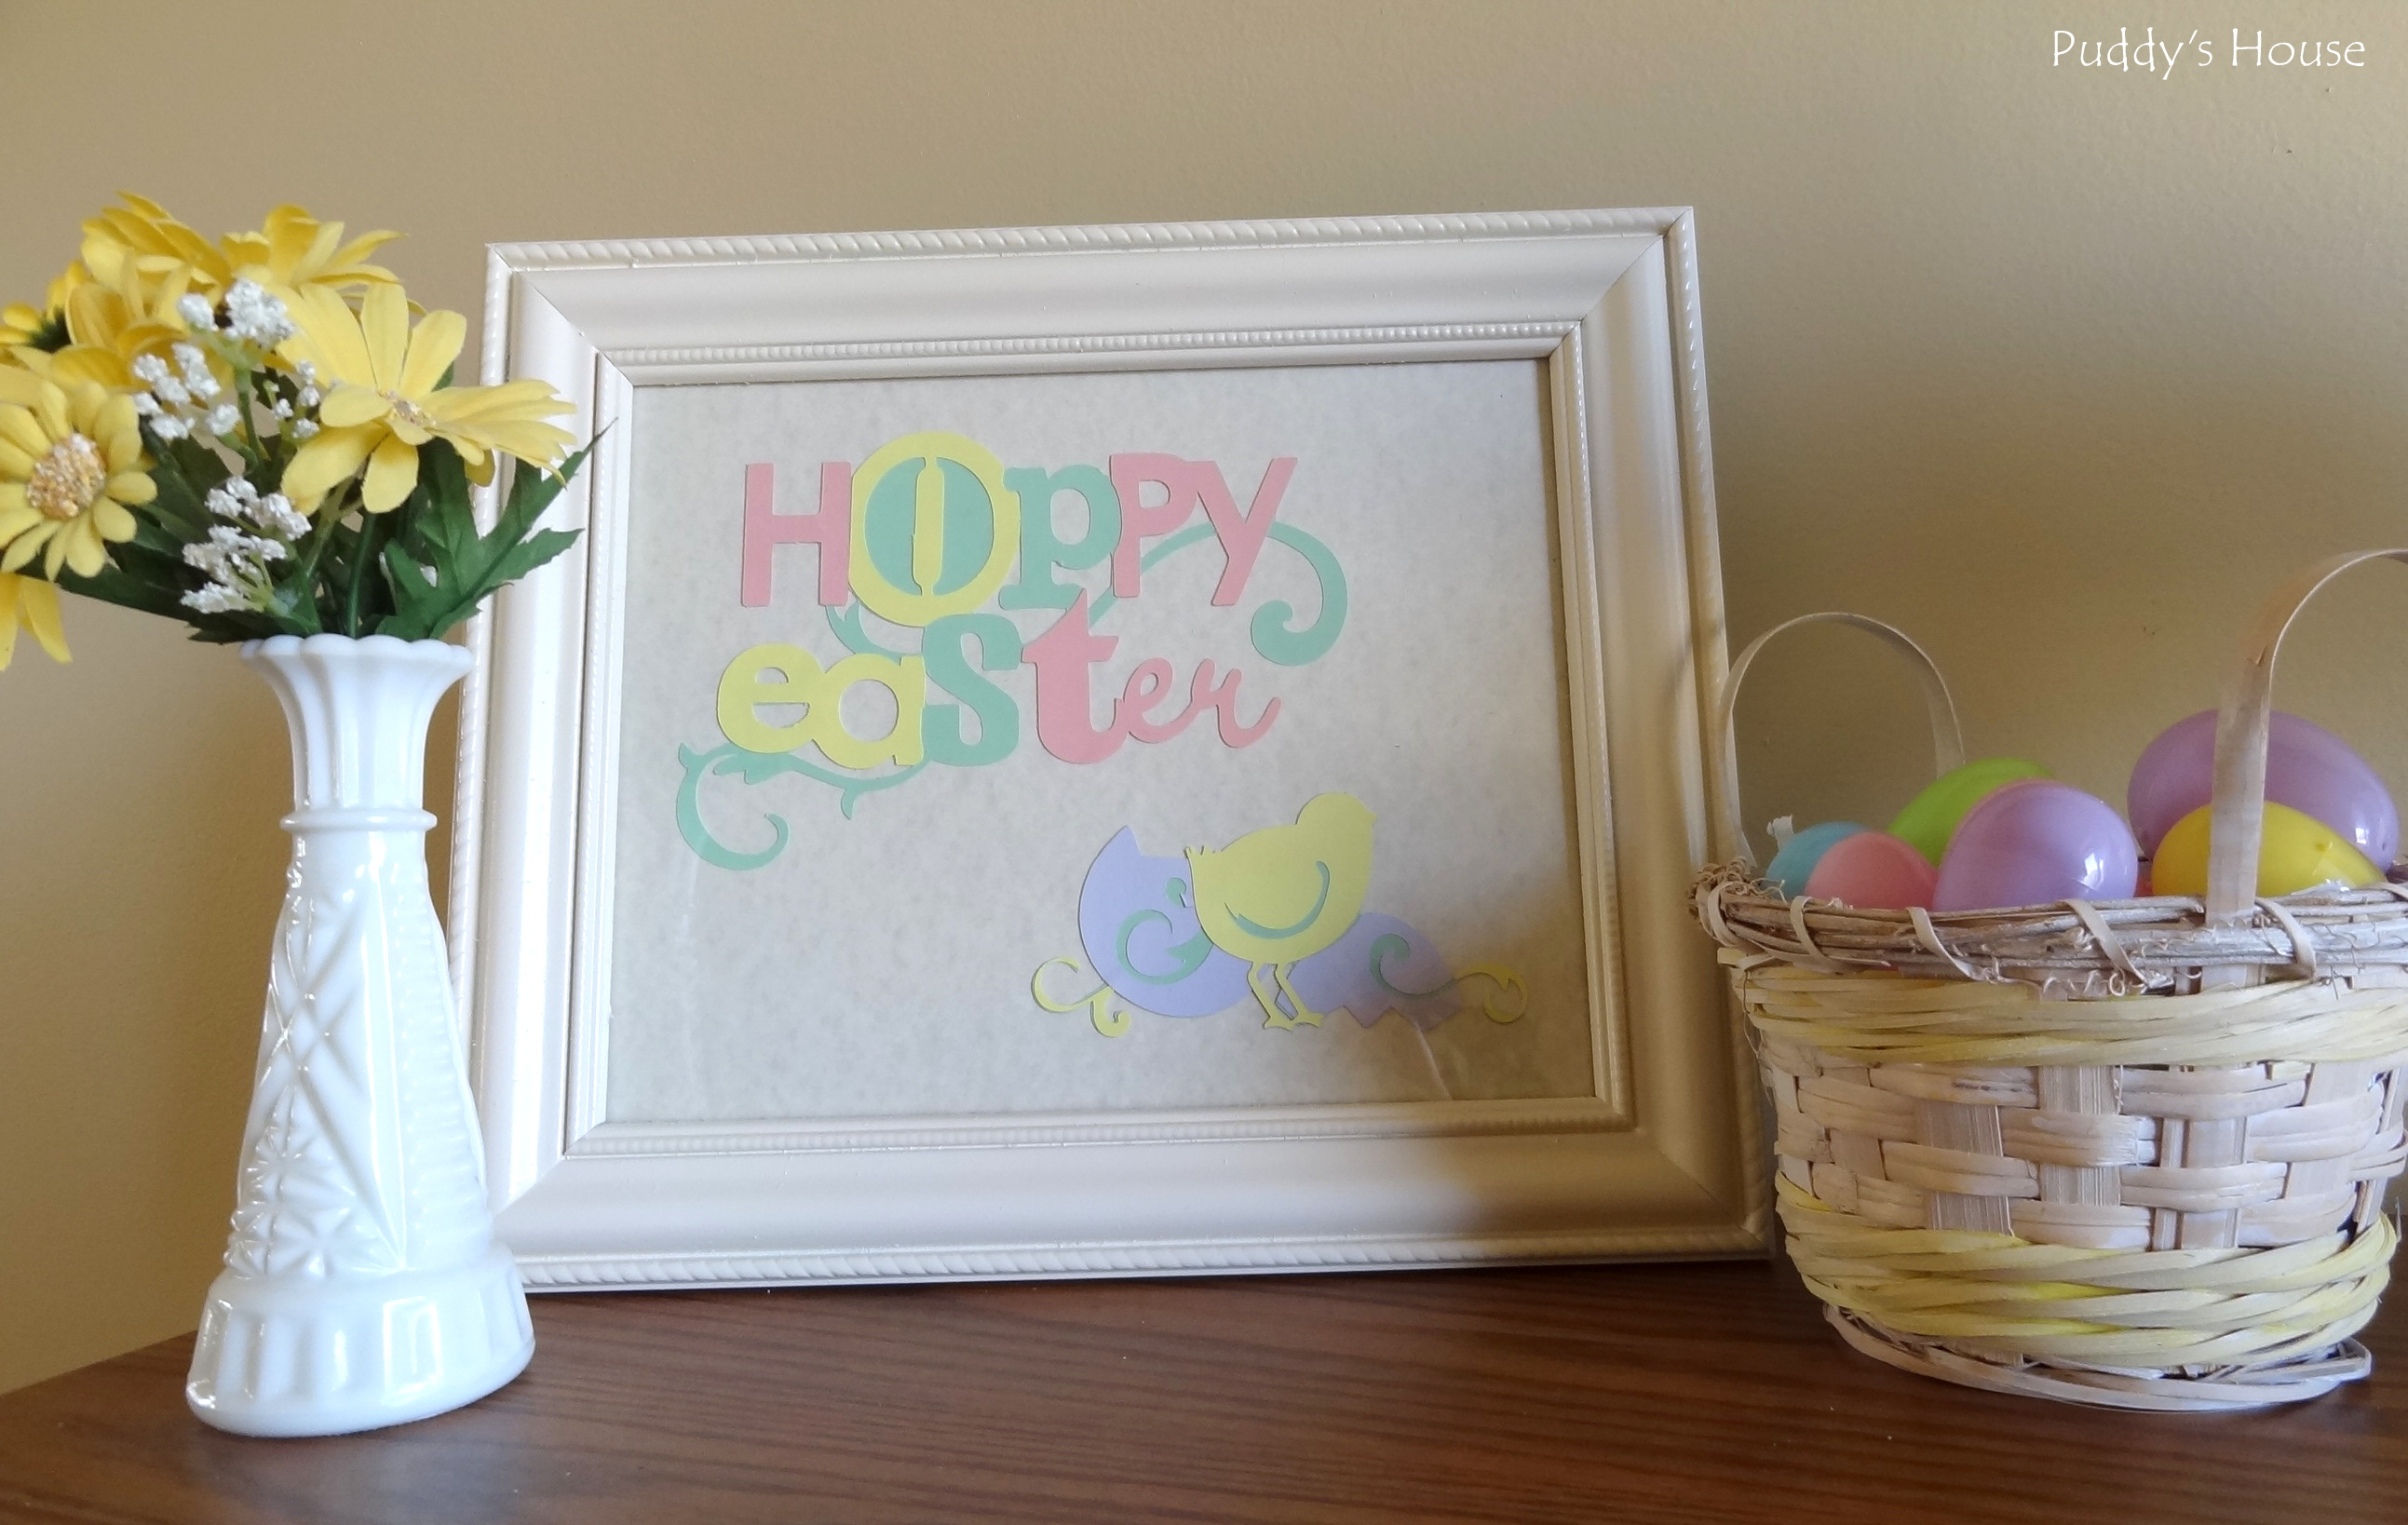 ... Cricut Home Decor Projects 18 Cricut Home Decor Projects Personalized  Family Name Sign ...